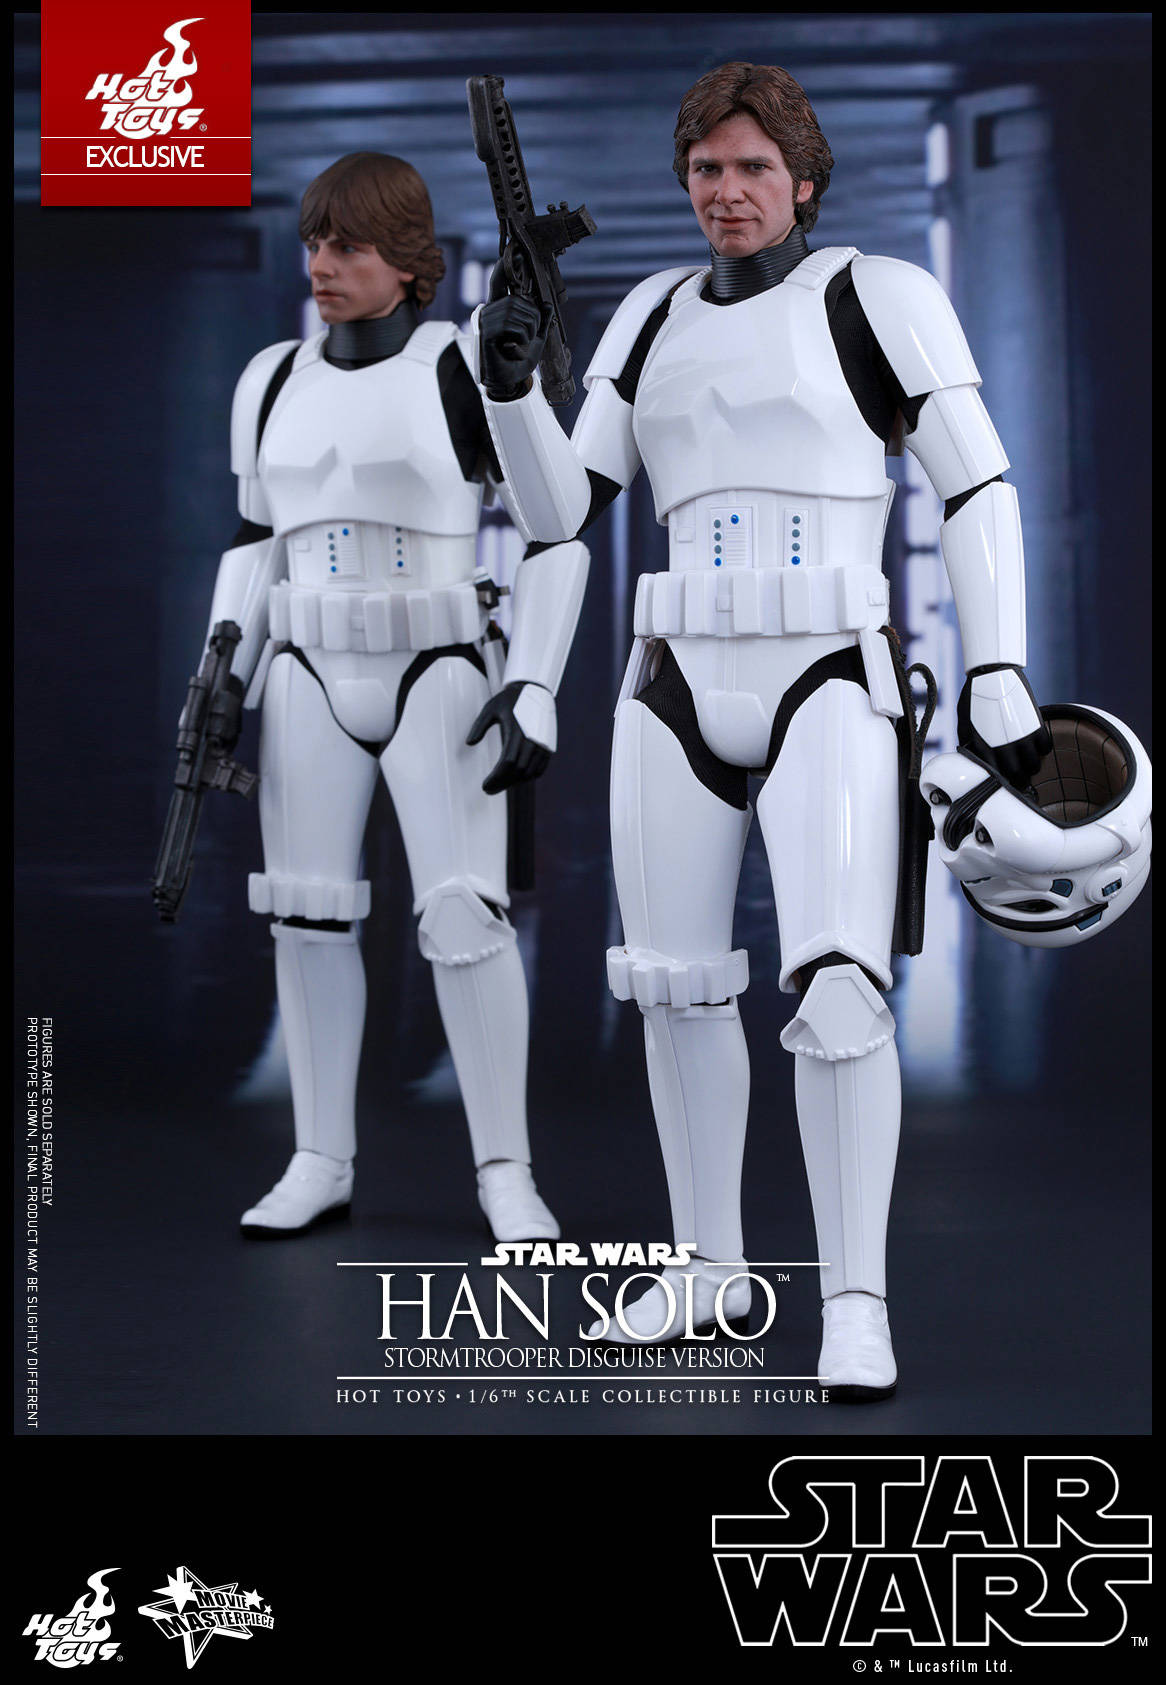 Hot-Toys---Star-Wars---Han-Solo-(Stormtrooper-Disguise-Version)-Collectible-Figure PR3